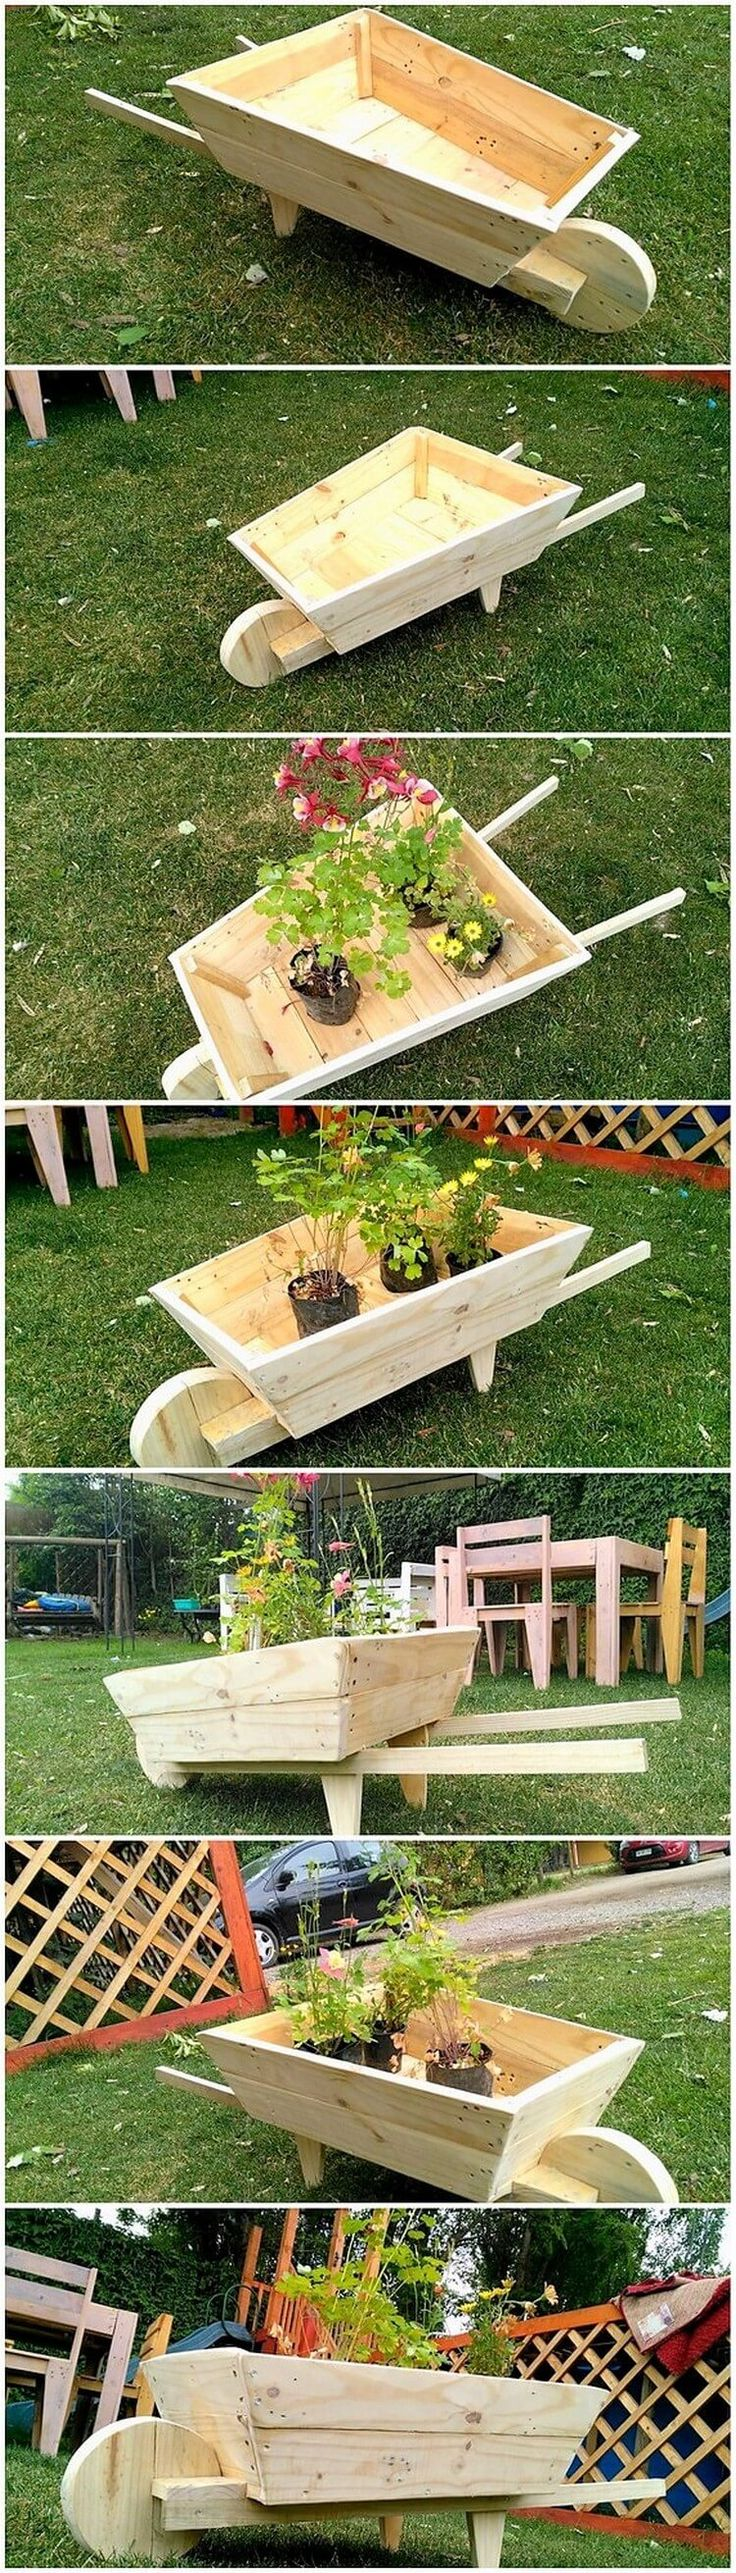 There are so many wood pallet design ideas for your house which you can use in the creation of the wood pallet wheel barrow options. The interesting part of this wood pallet wheel barrow design is all giving out the impression of being the complete furniture set for your house decoration or gardening.